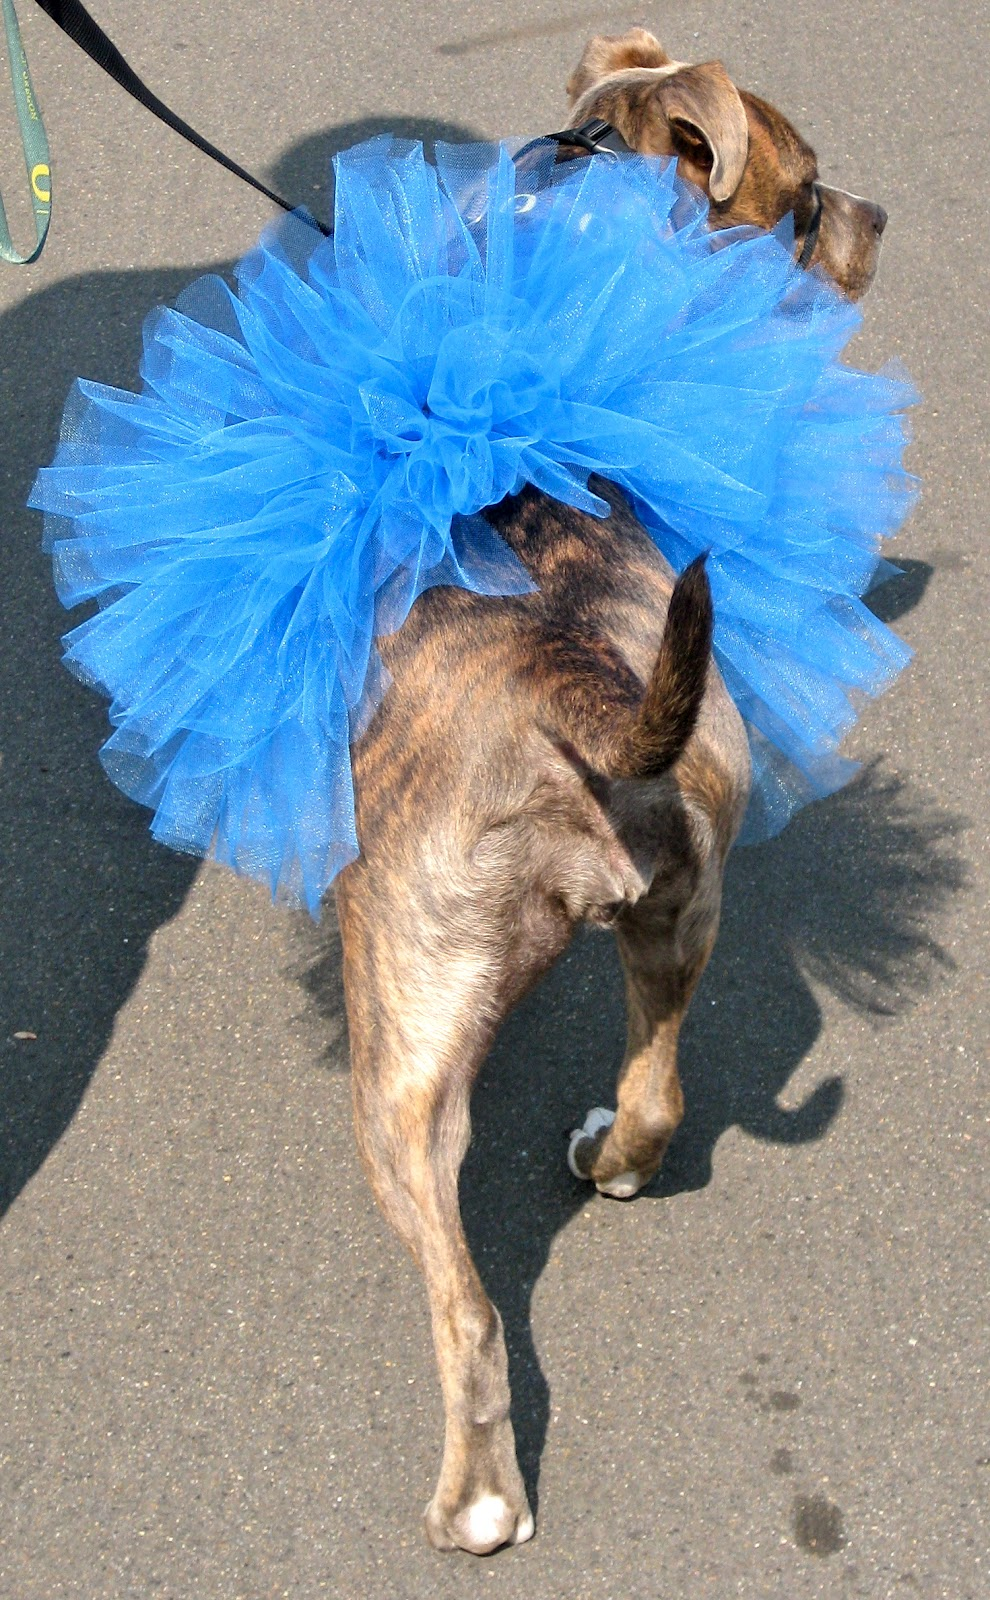 One thingu0027s for certain whatever we decide to dress Athena up as she will be wearing a tutu as part of her costume! & Pitlandia: DIY Dog Tutu Tutorial